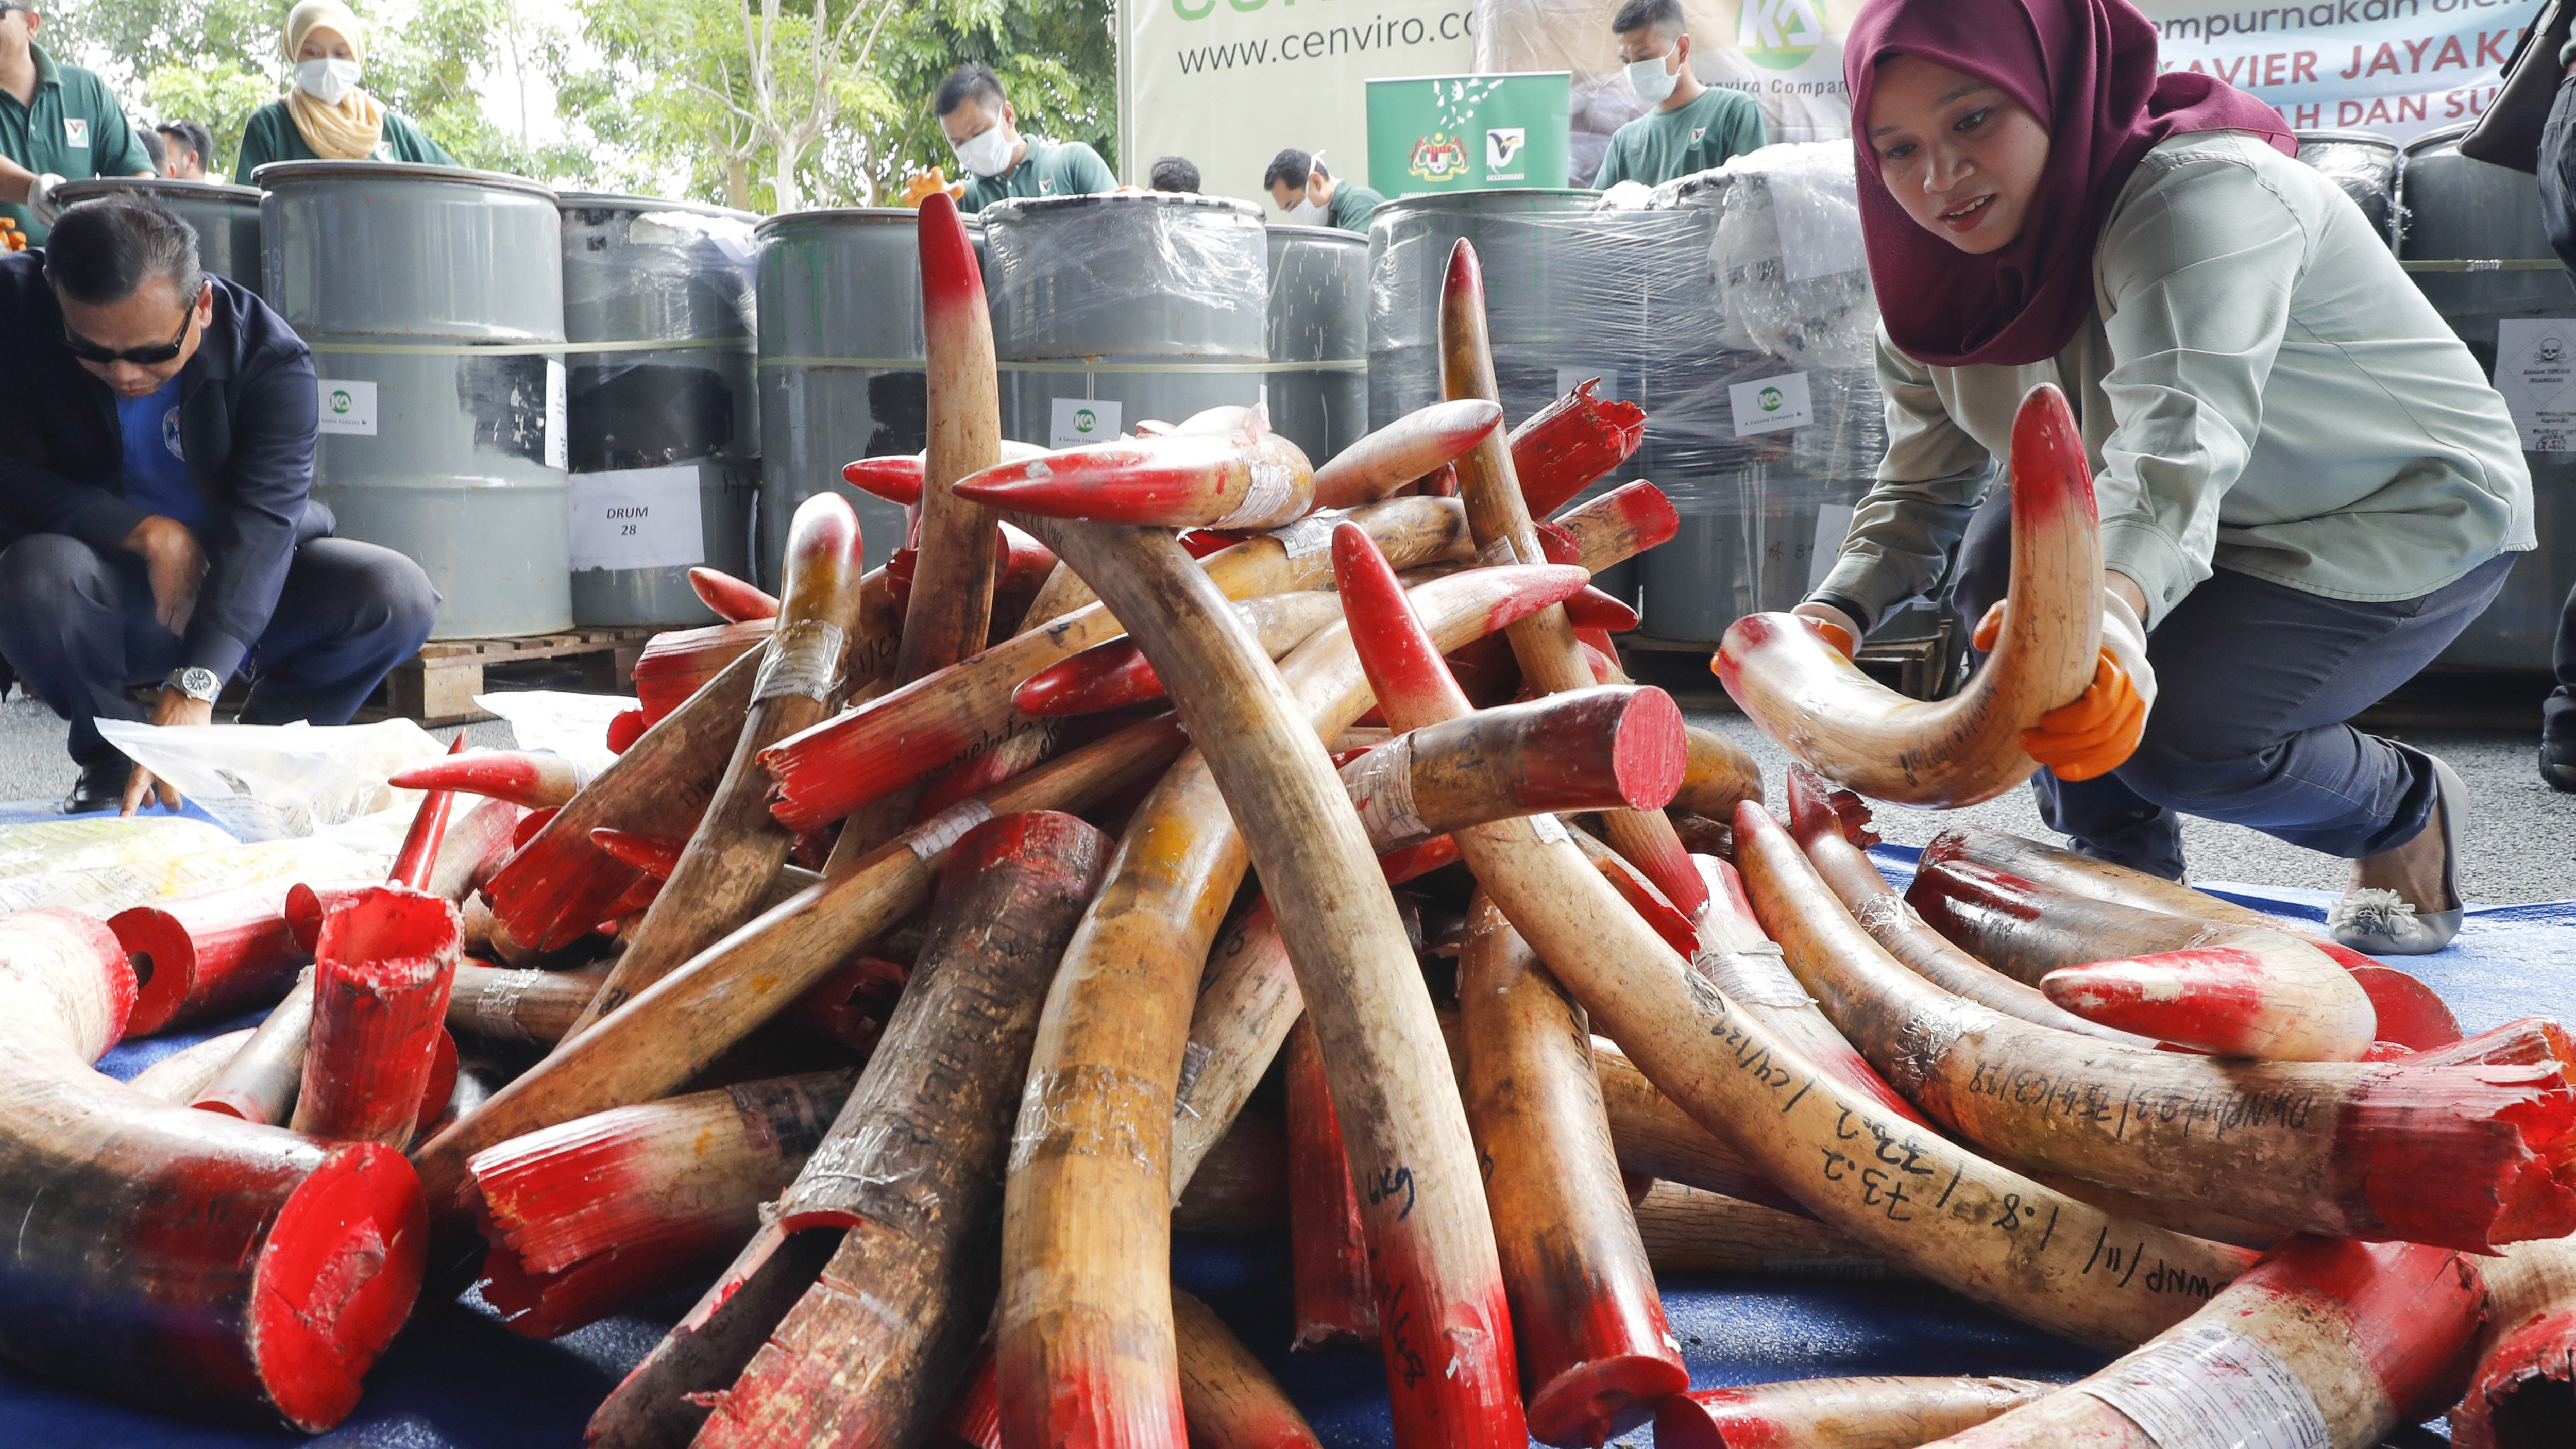 b7dab744bcdb Malaysia has destroyed nearly four tons of elephant tusks and ivory  products estimated to be worth 13.26 million ringgit (£2.46 million) as  part of its ...